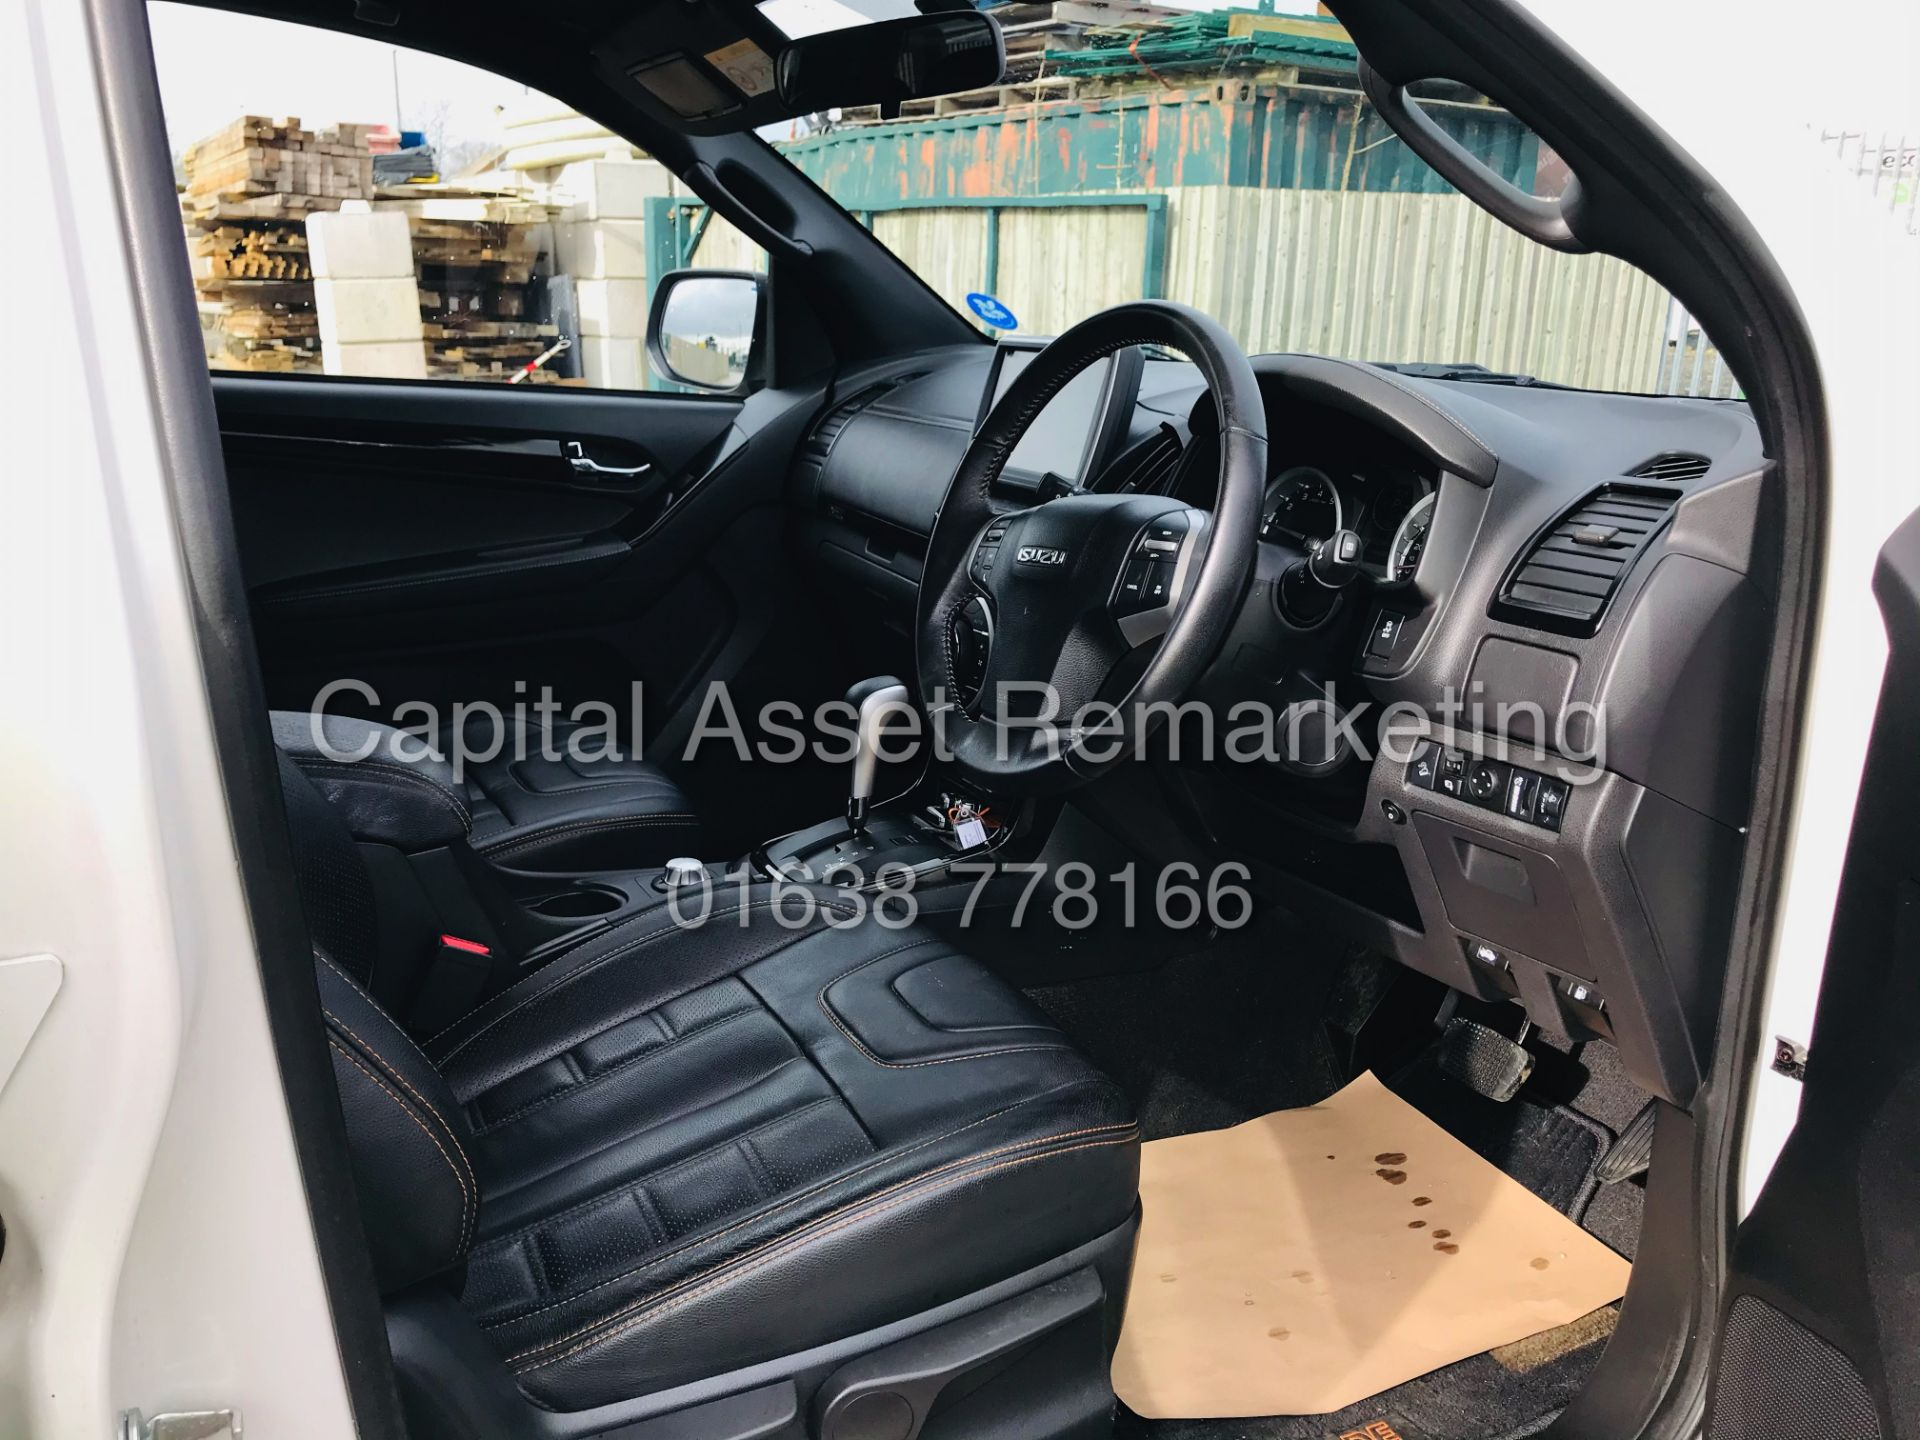 "(On Sale) ISUZU D-MAX ""BLADE"" AUTO - 1 OWNER (2019 - EURO 6) LEATHER - SAT NAV *TOP SPEC* - Image 15 of 34"